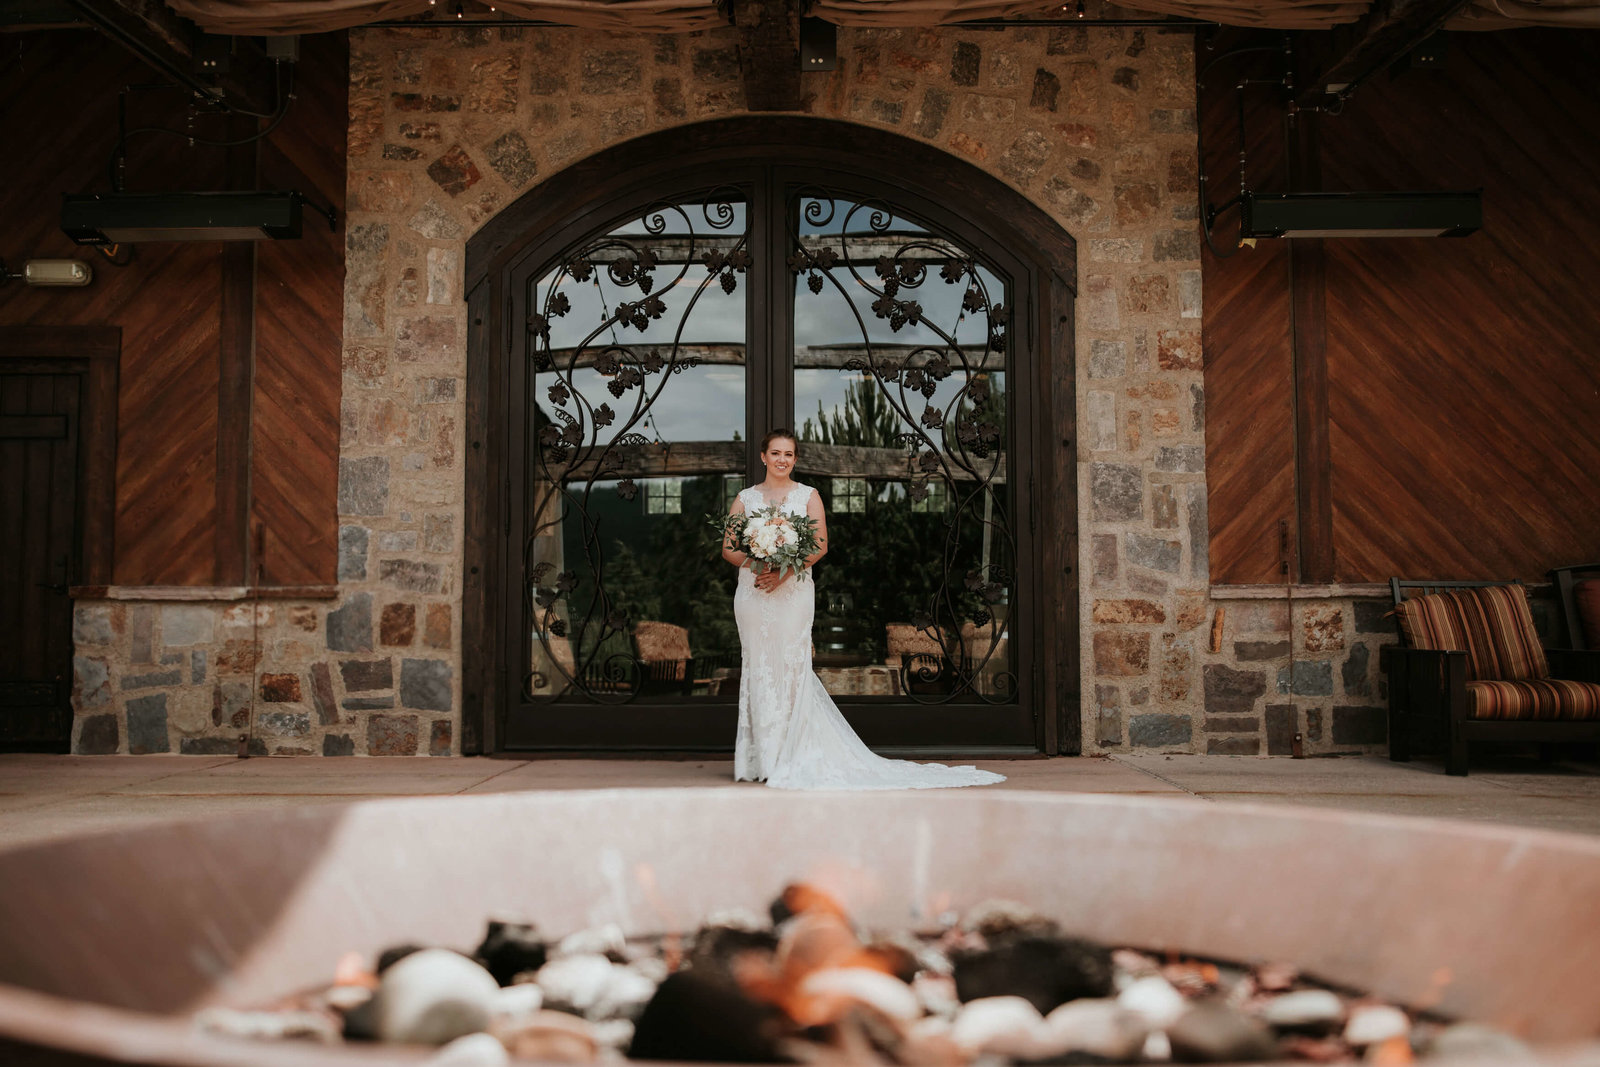 Swiftwater-Cellars-wedding-Lauren-Peter-June-22-by-adina-preston-photography-124